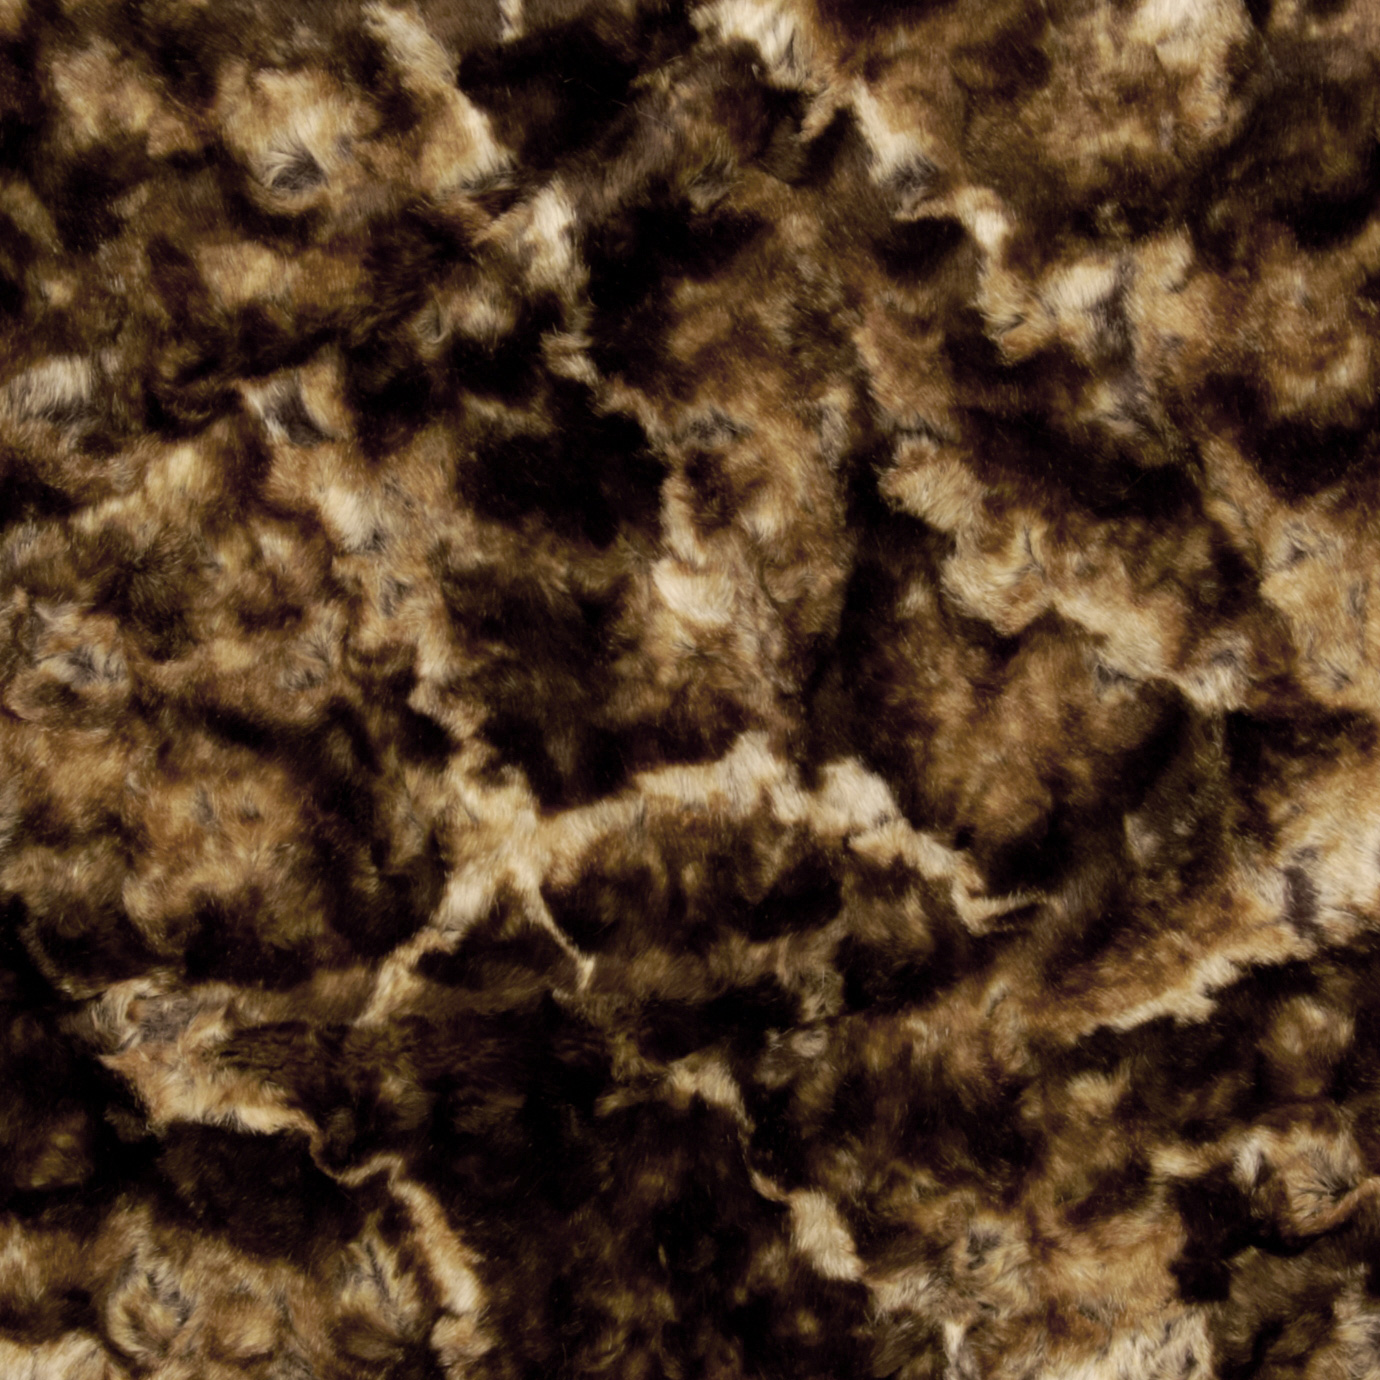 Faux Fur Alaskan Rabbit Caramel/Brown Fabric